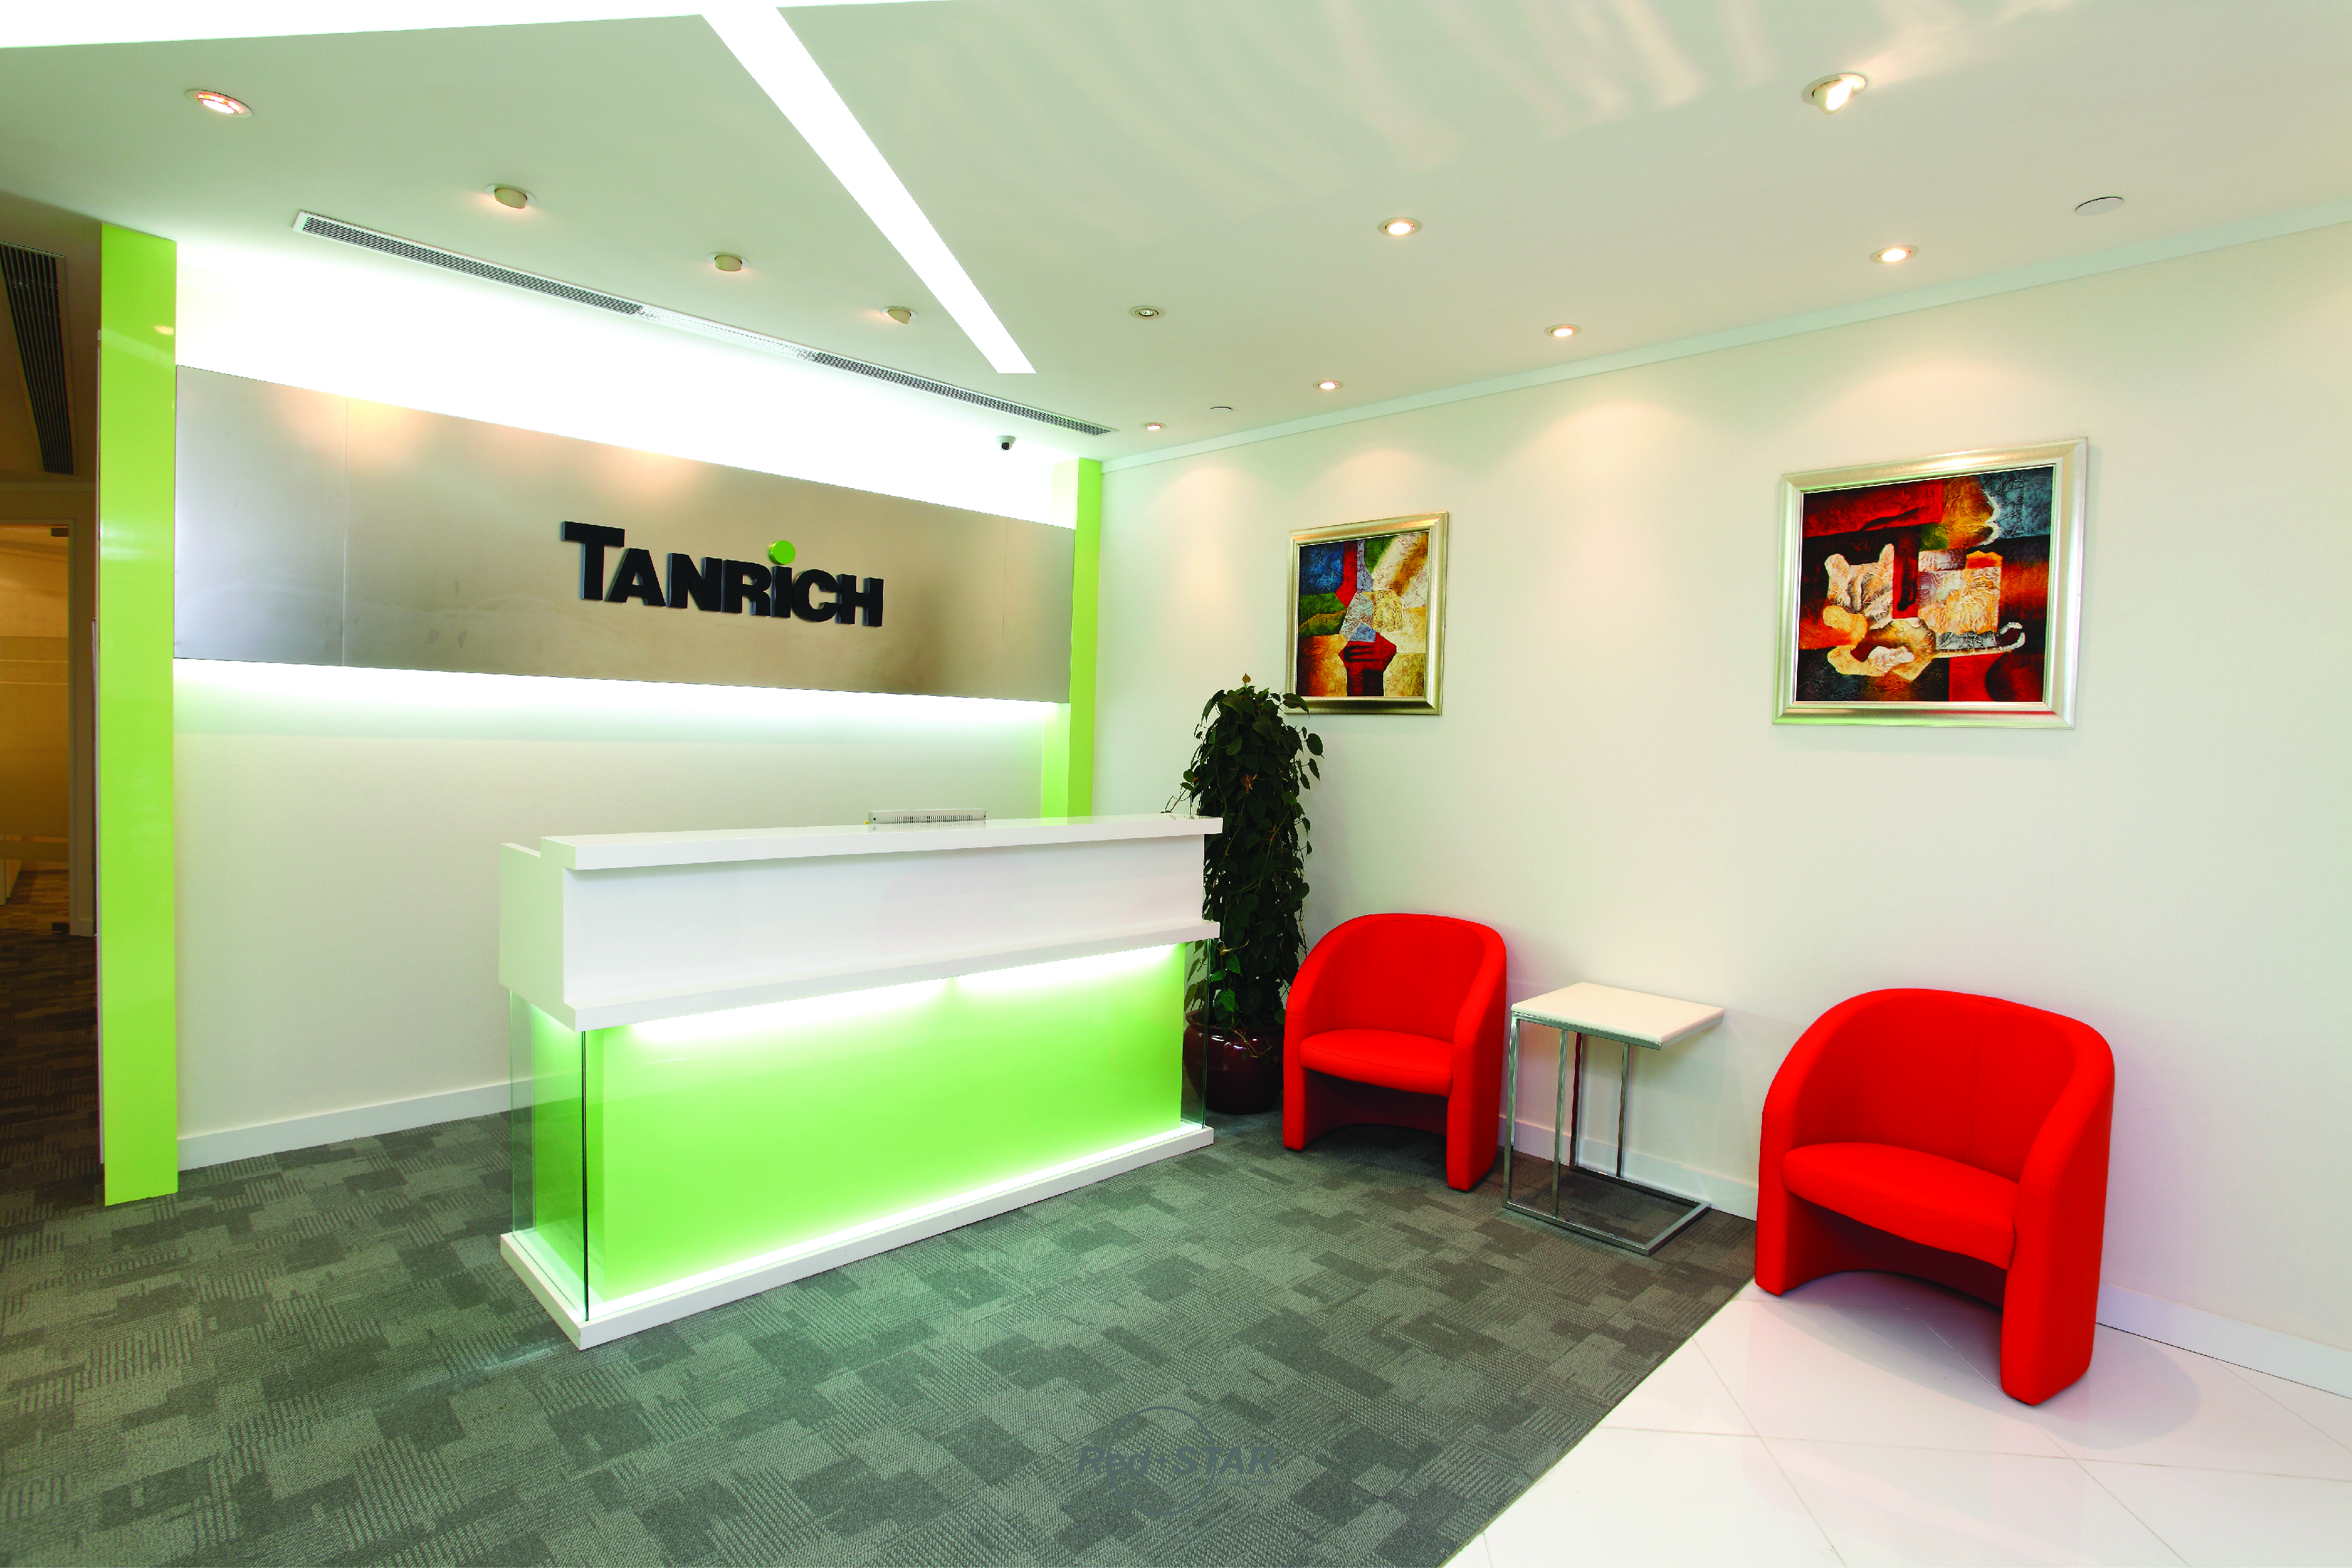 Tanrich (Asia) Financial Limited